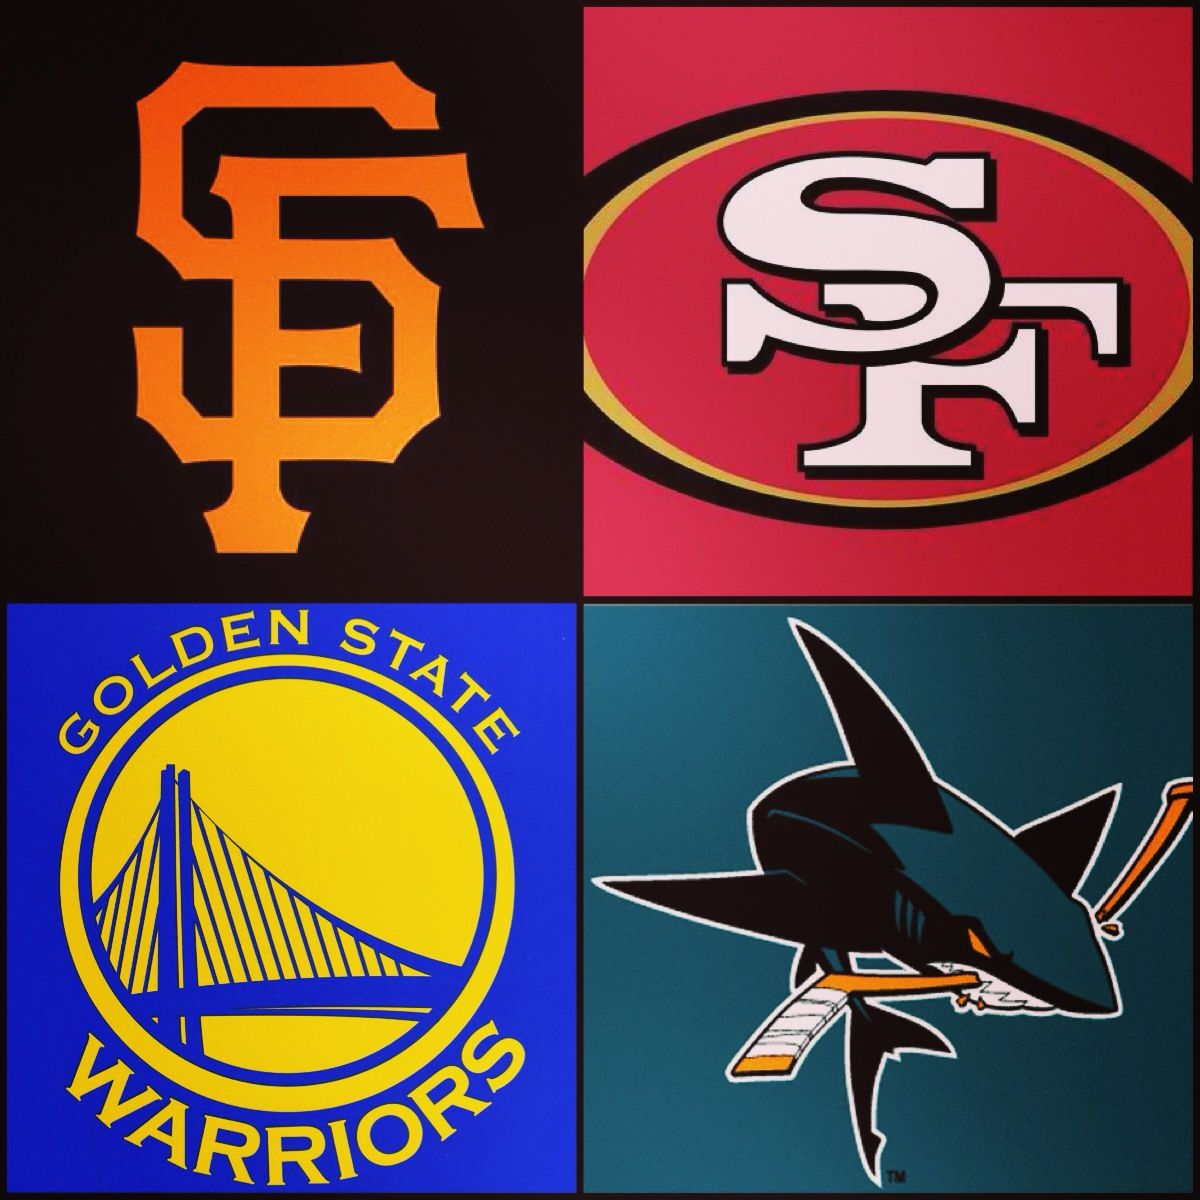 I love these Bay Area teams and clothing in their